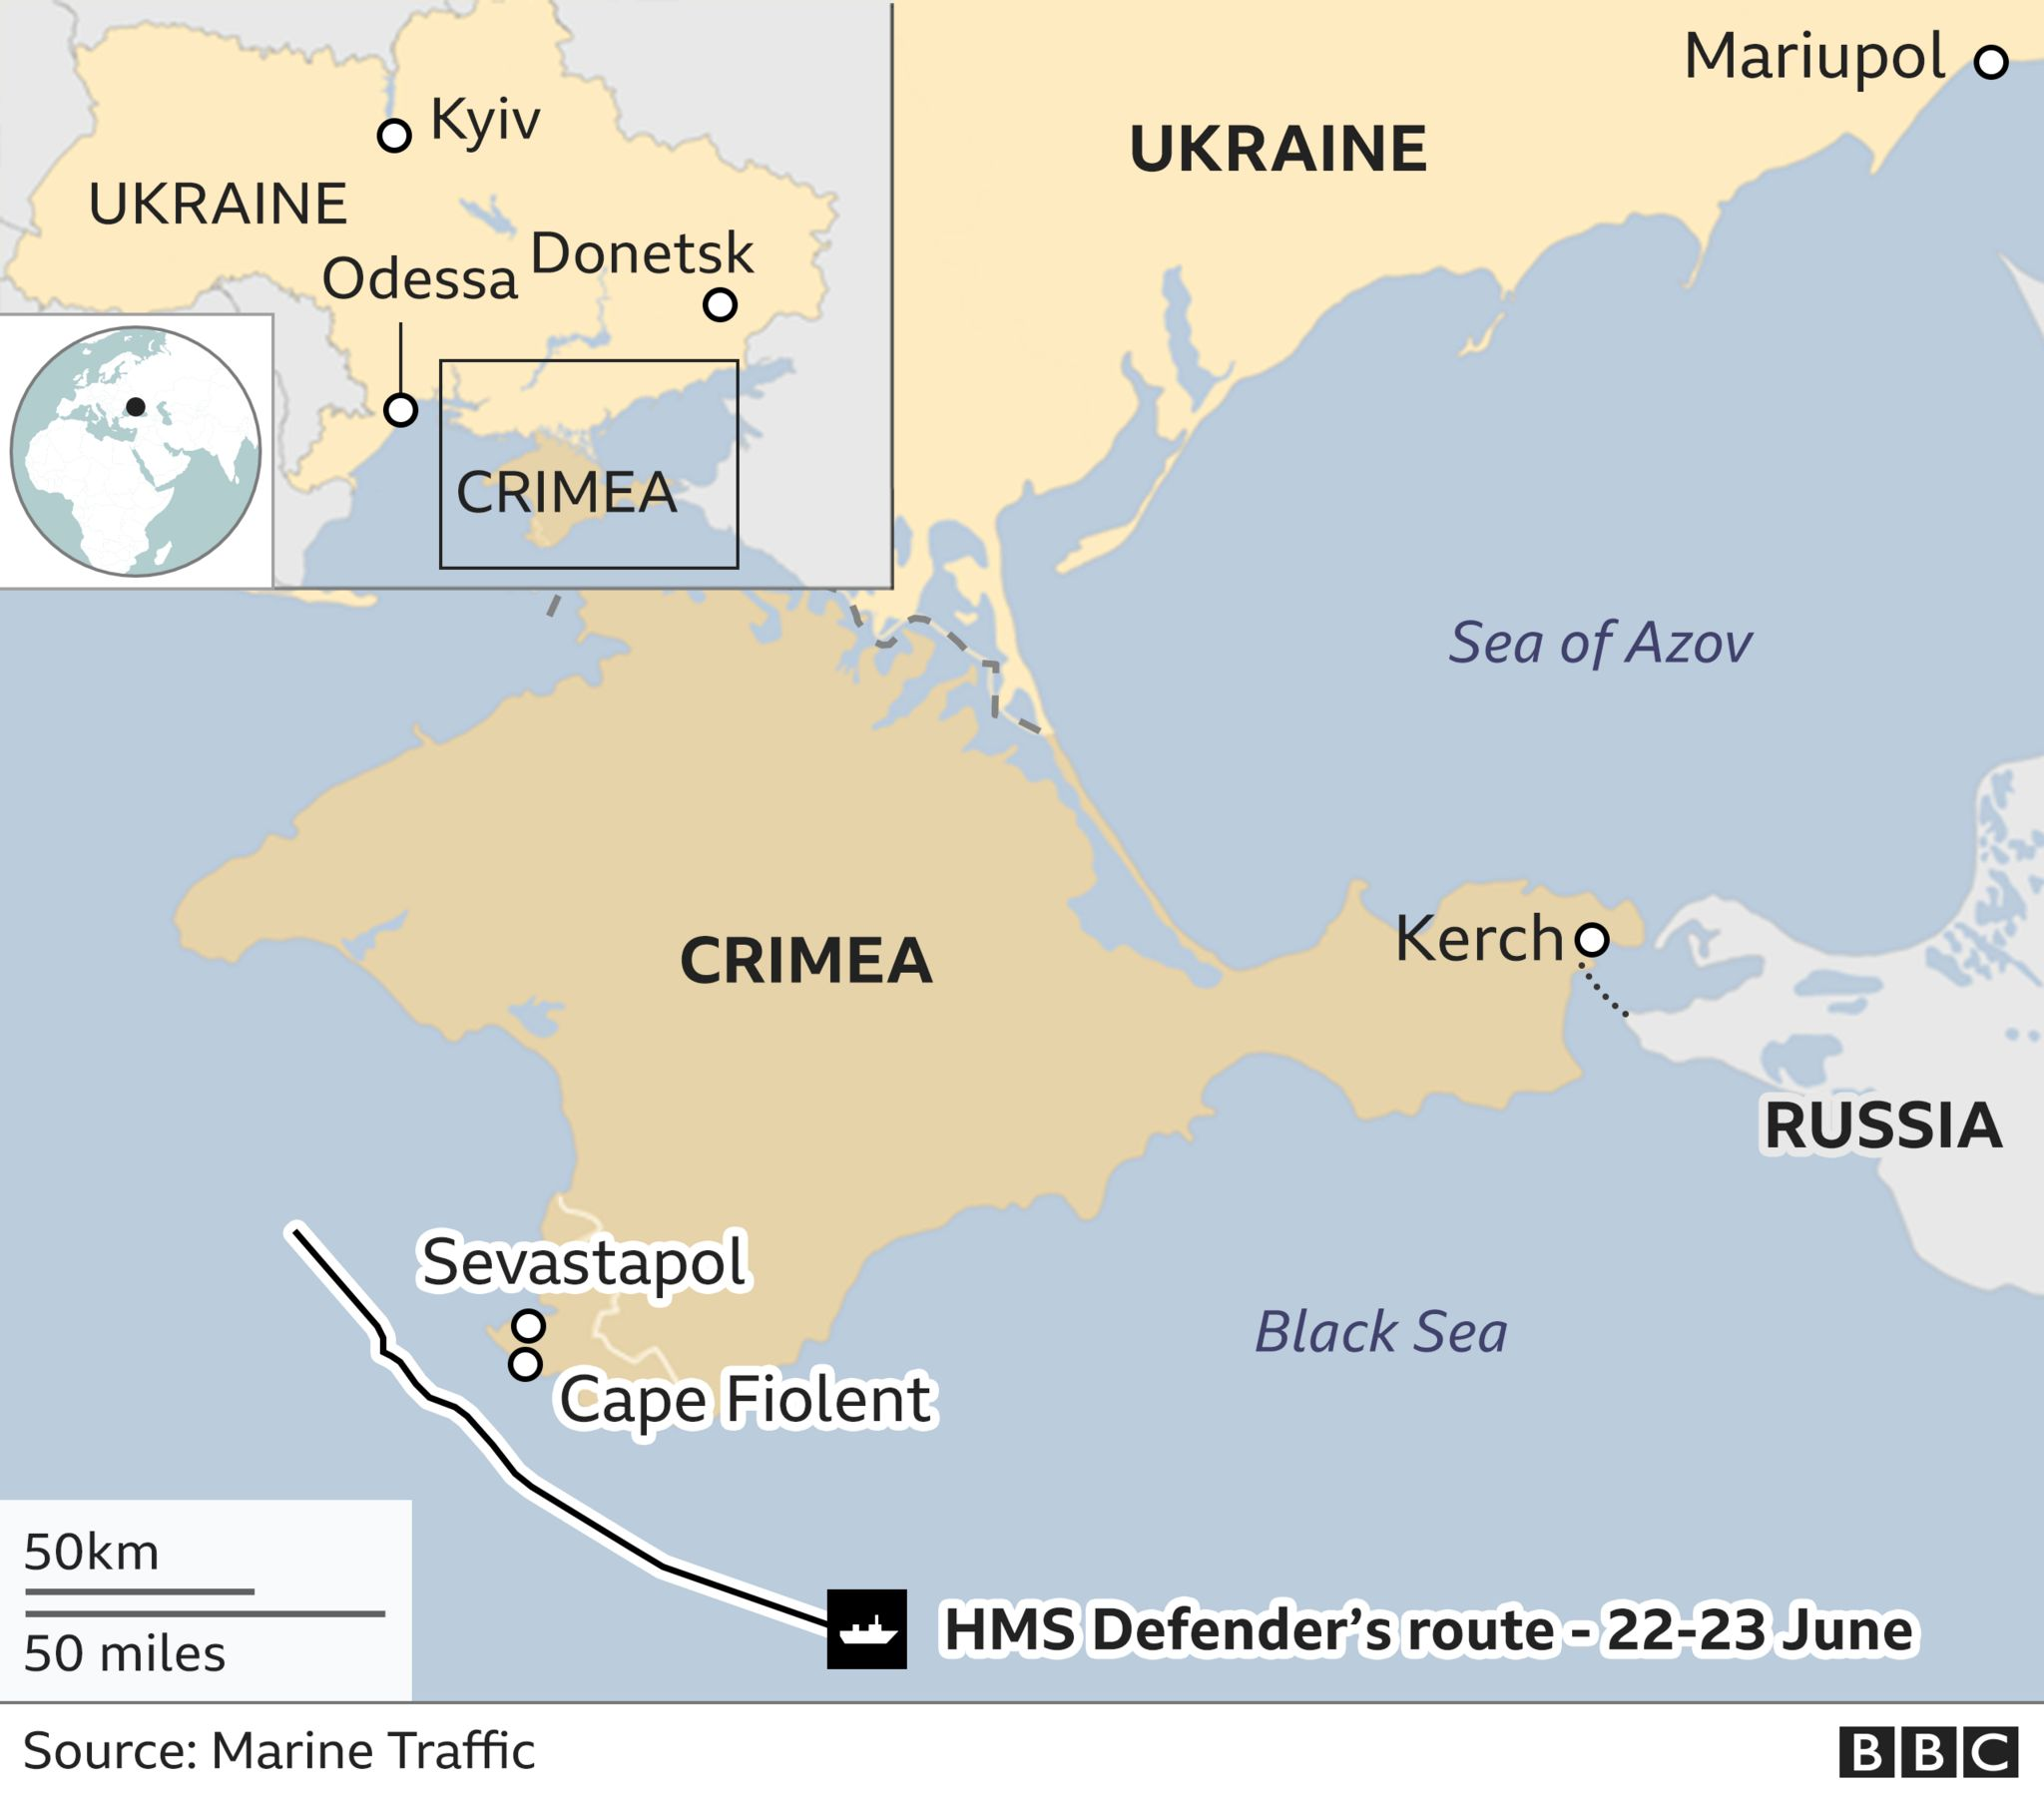 Map showing Crimea, Ukraine and Russia and the warship's path